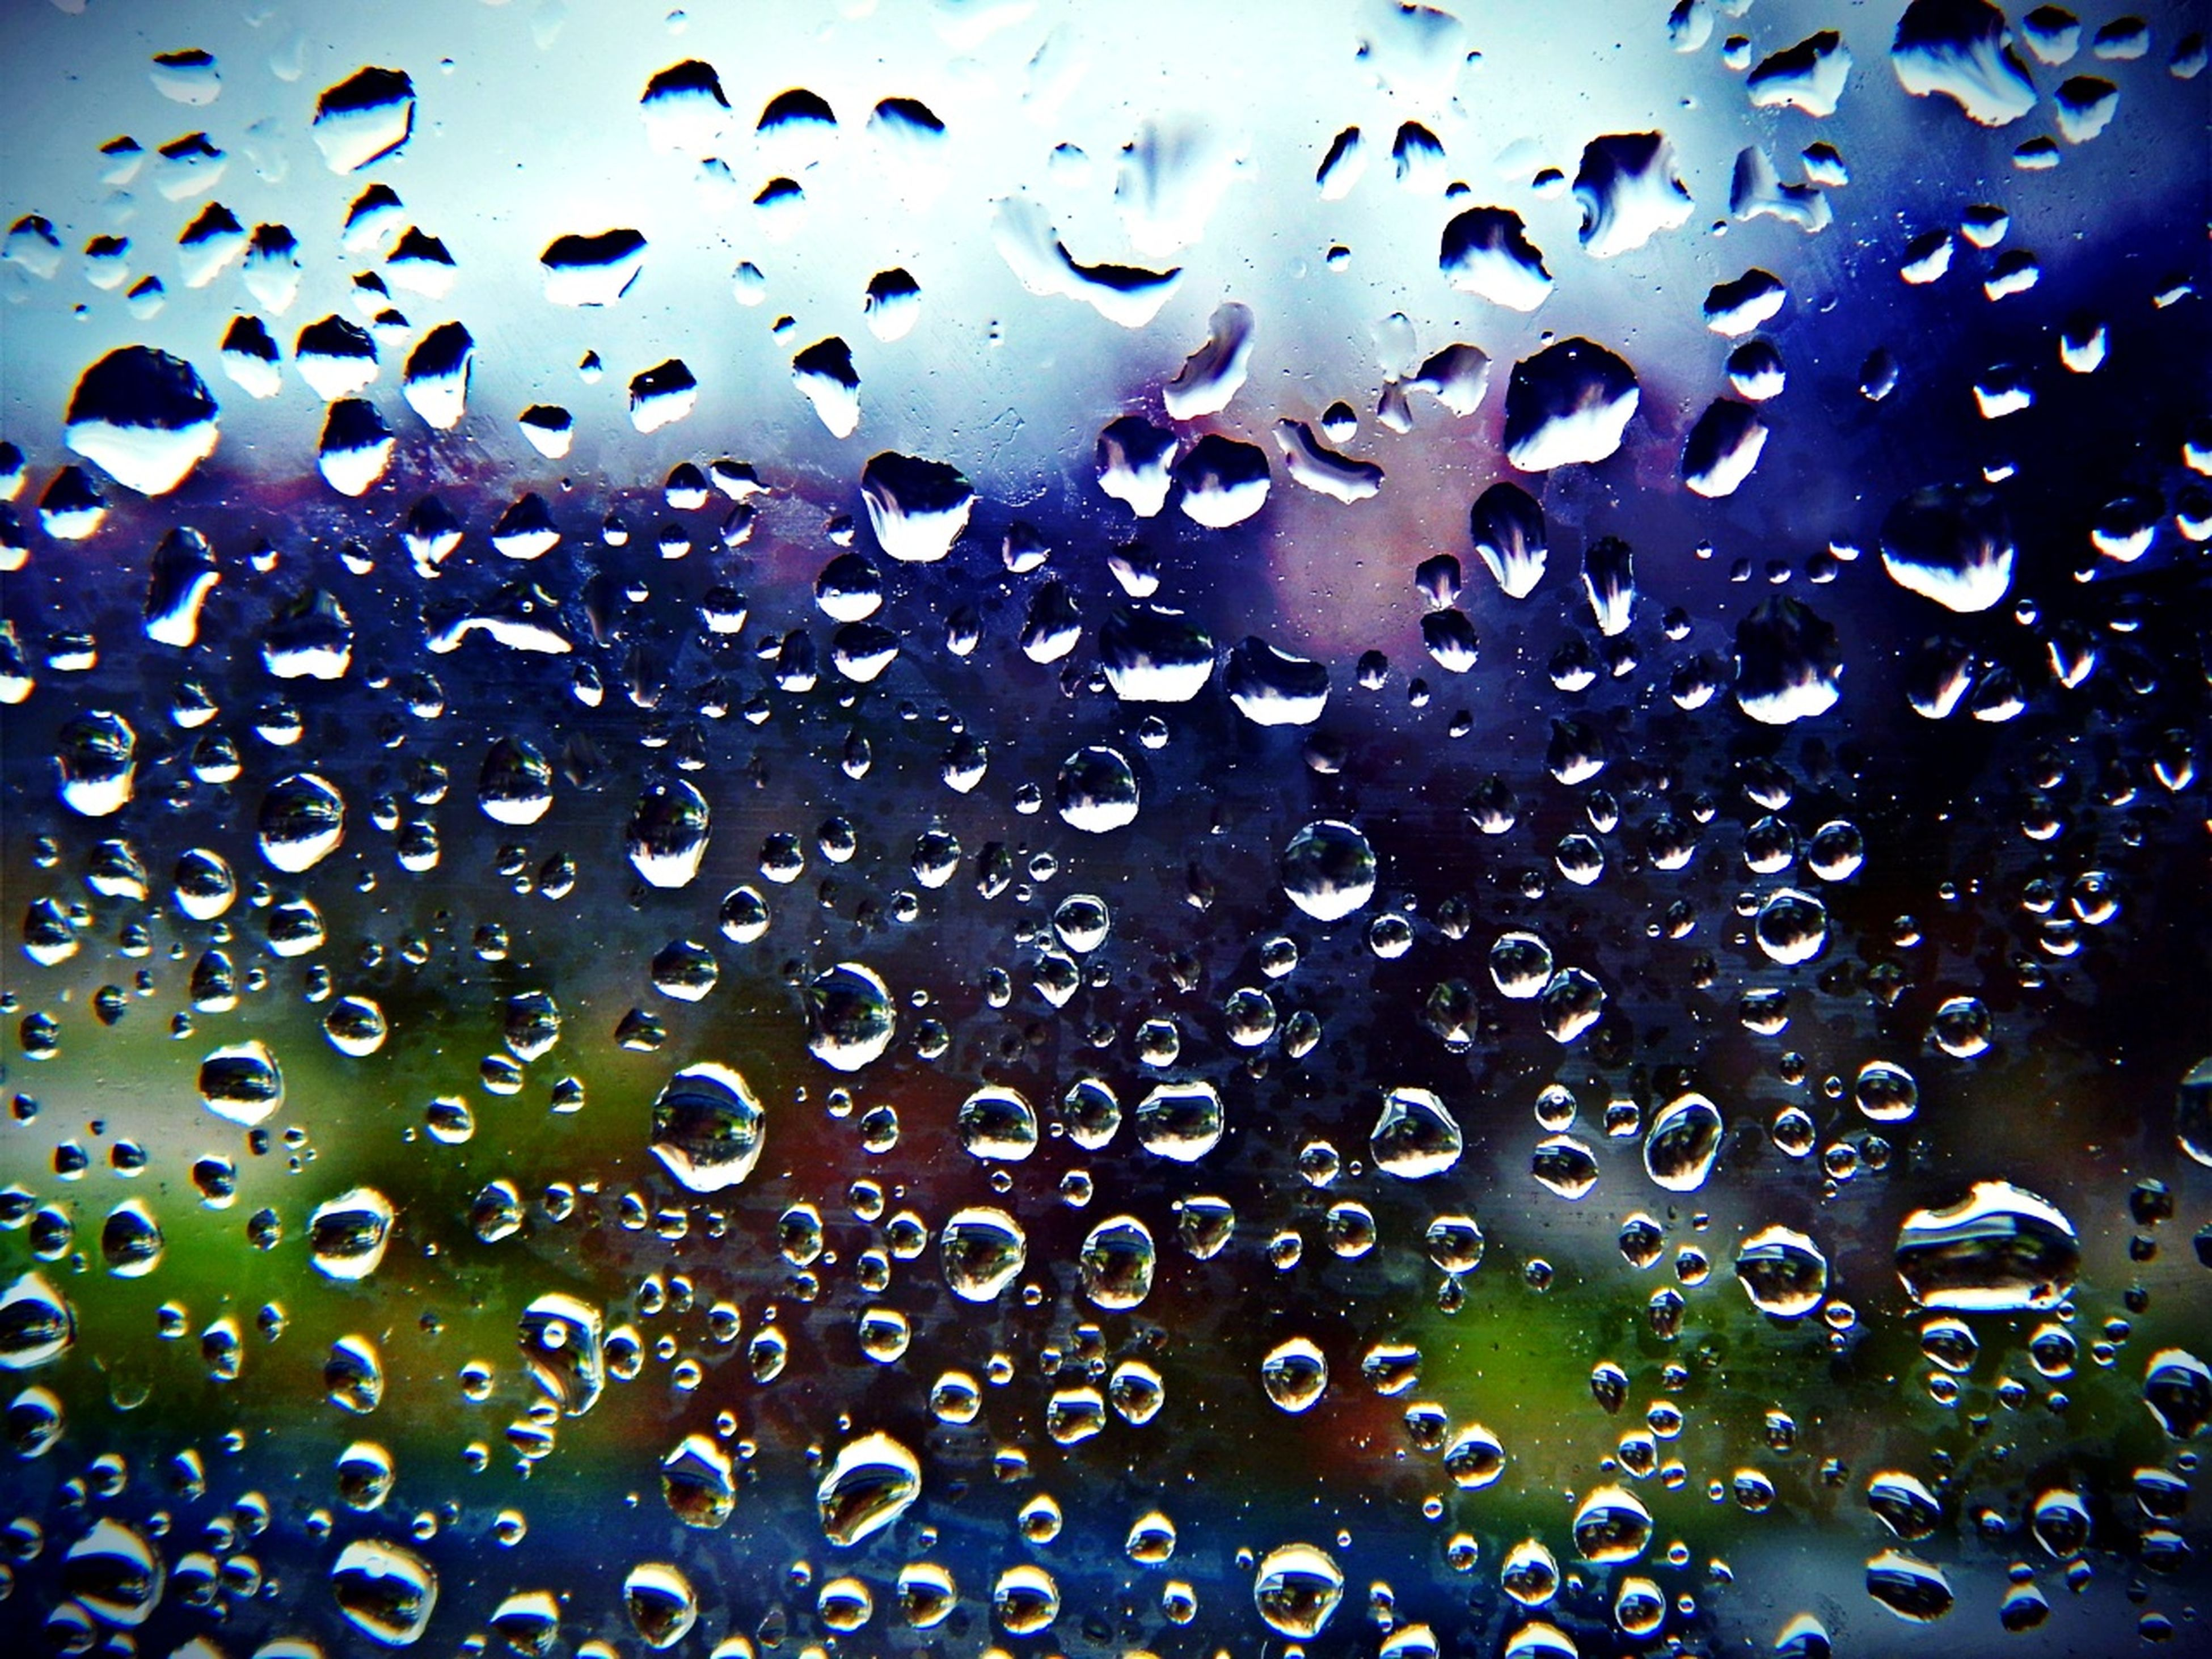 drop, wet, water, window, rain, transparent, glass - material, raindrop, weather, backgrounds, full frame, indoors, season, sky, glass, close-up, focus on foreground, water drop, droplet, monsoon